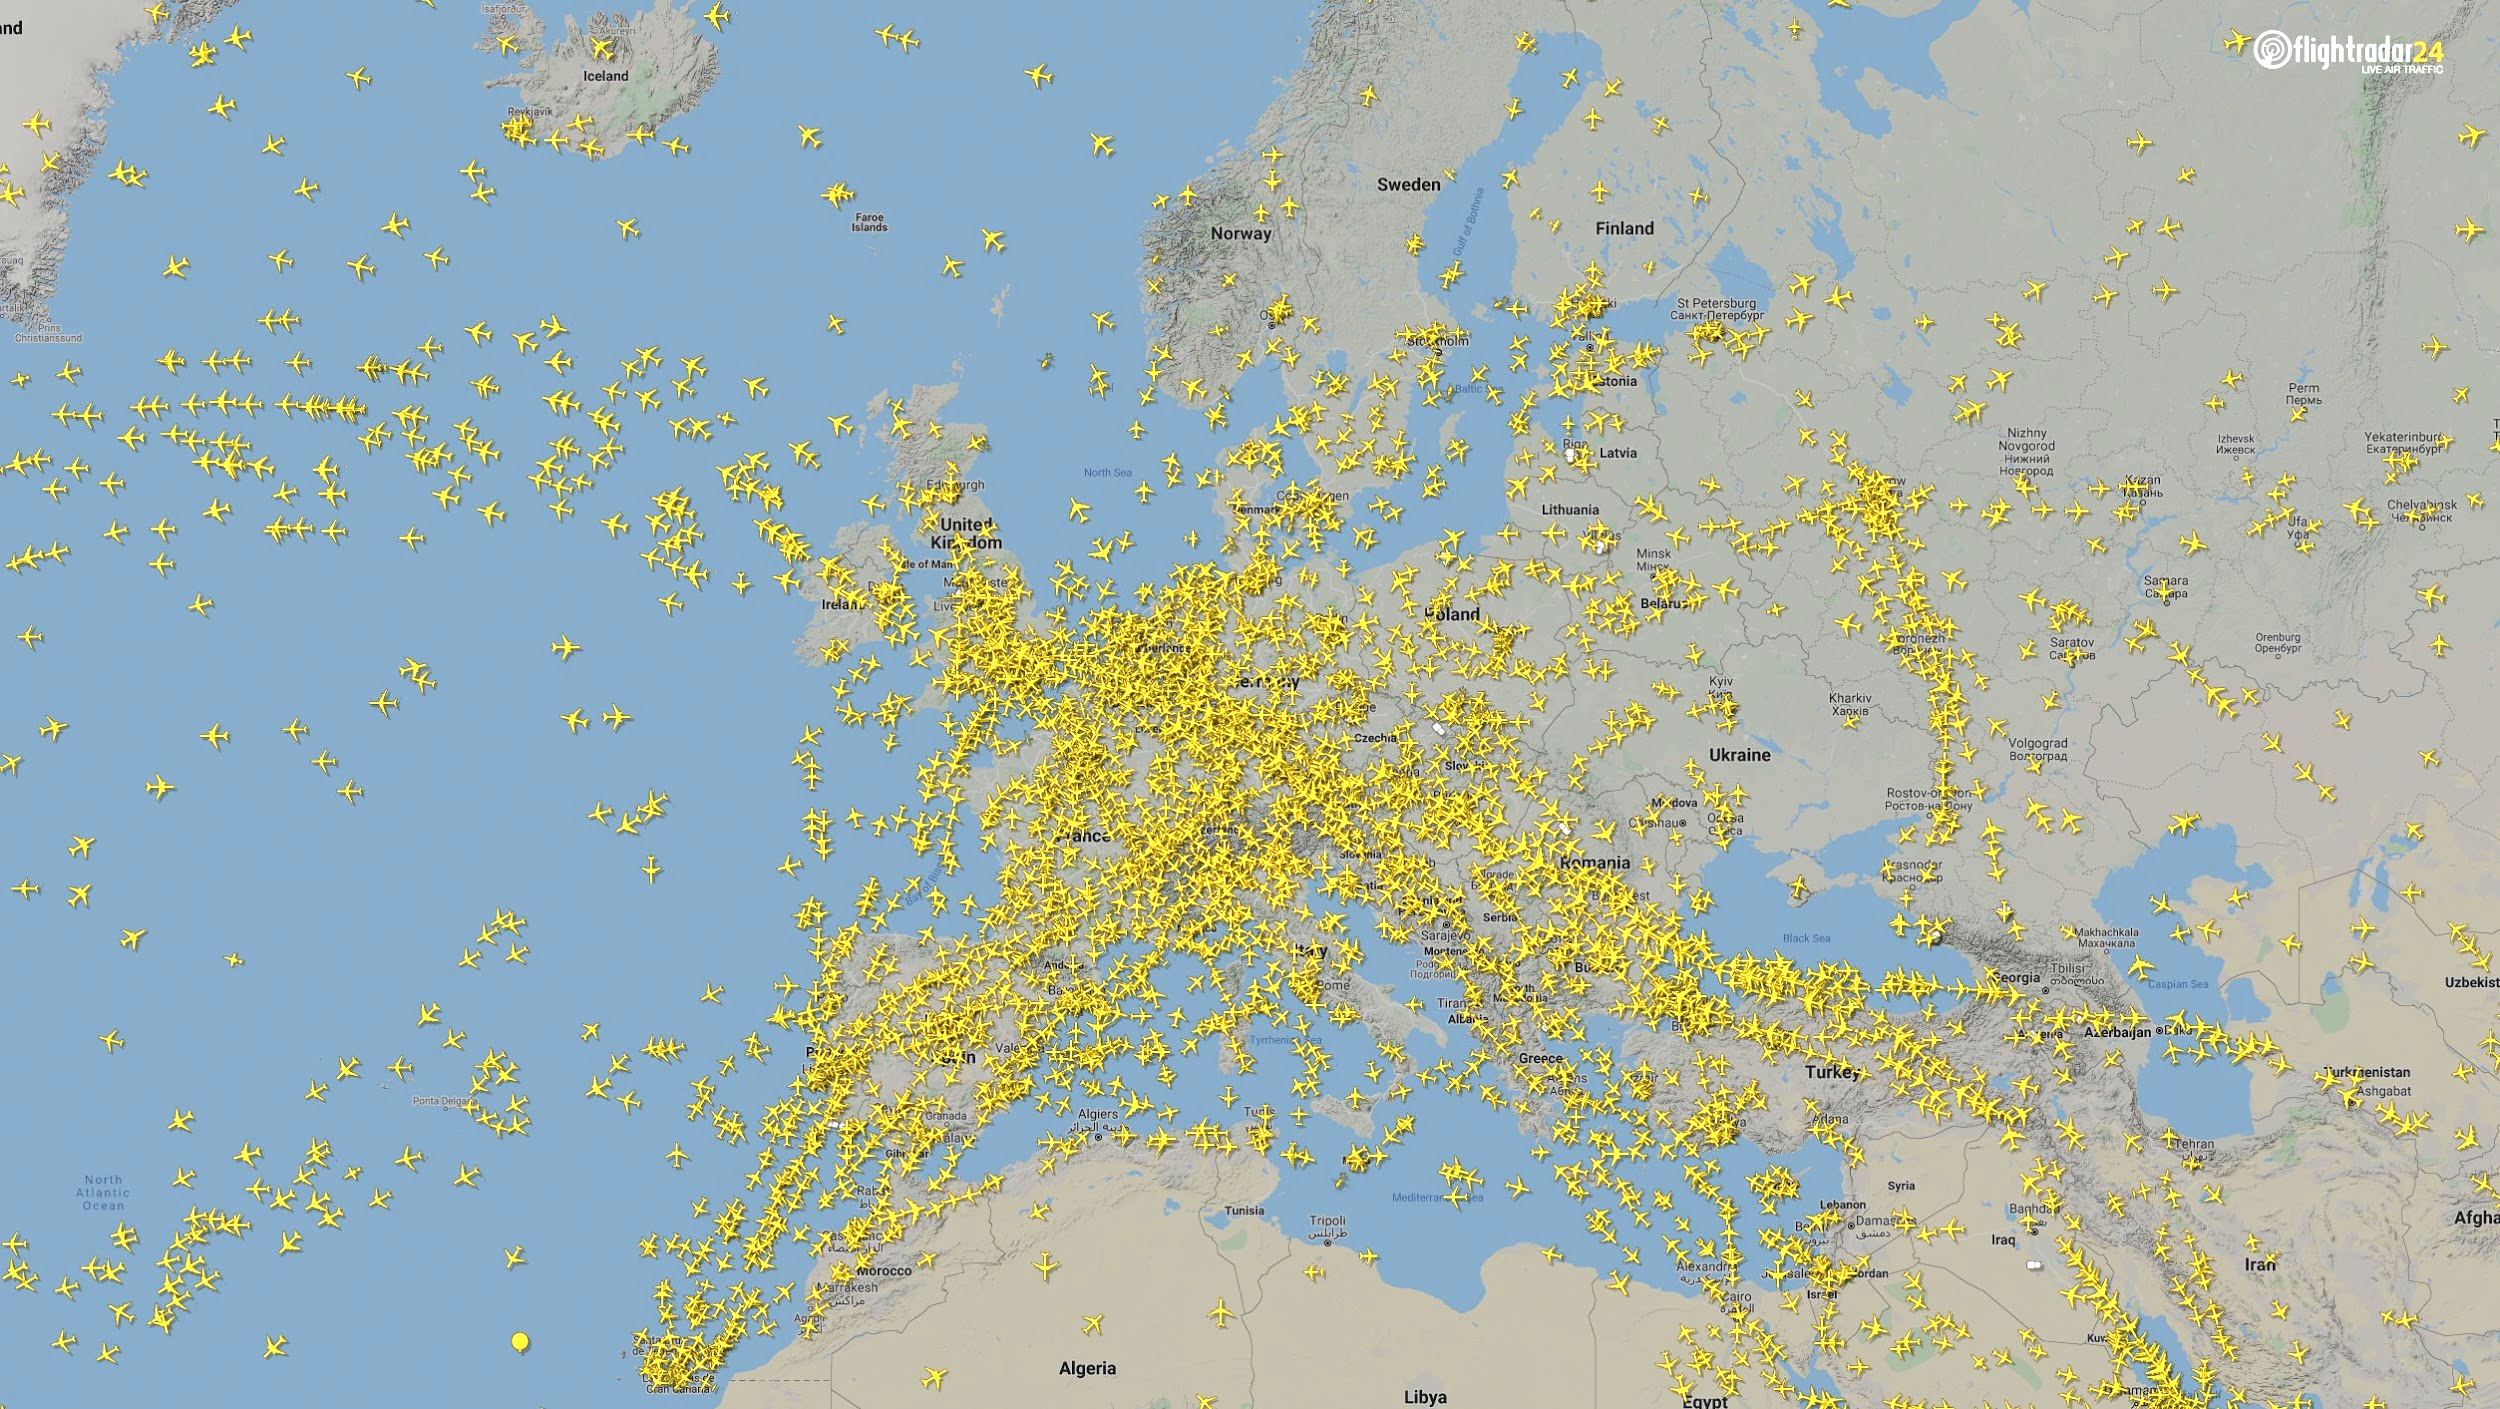 Air traffic over Europe March 7, 2020. (Source: Flightradar24)